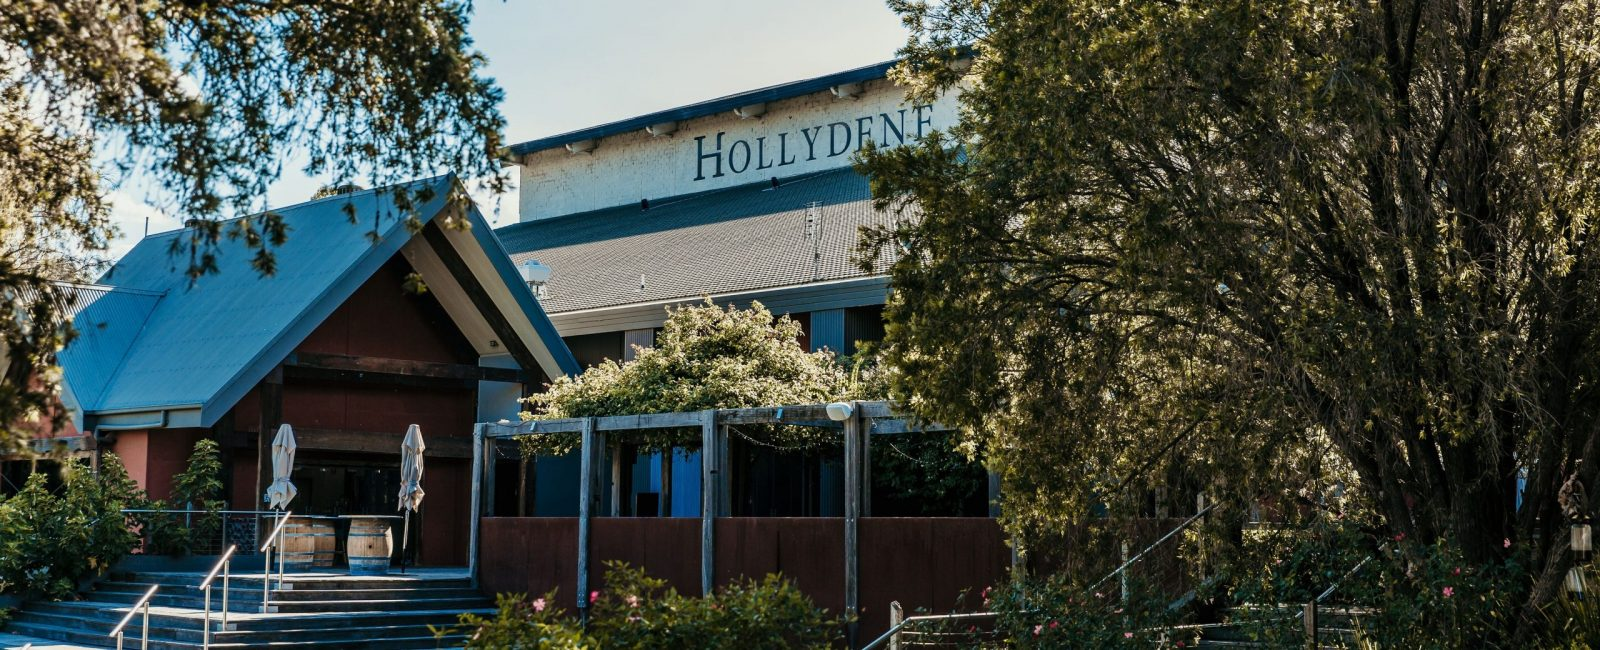 Hollydene Estate – Upper Hunter Getaway